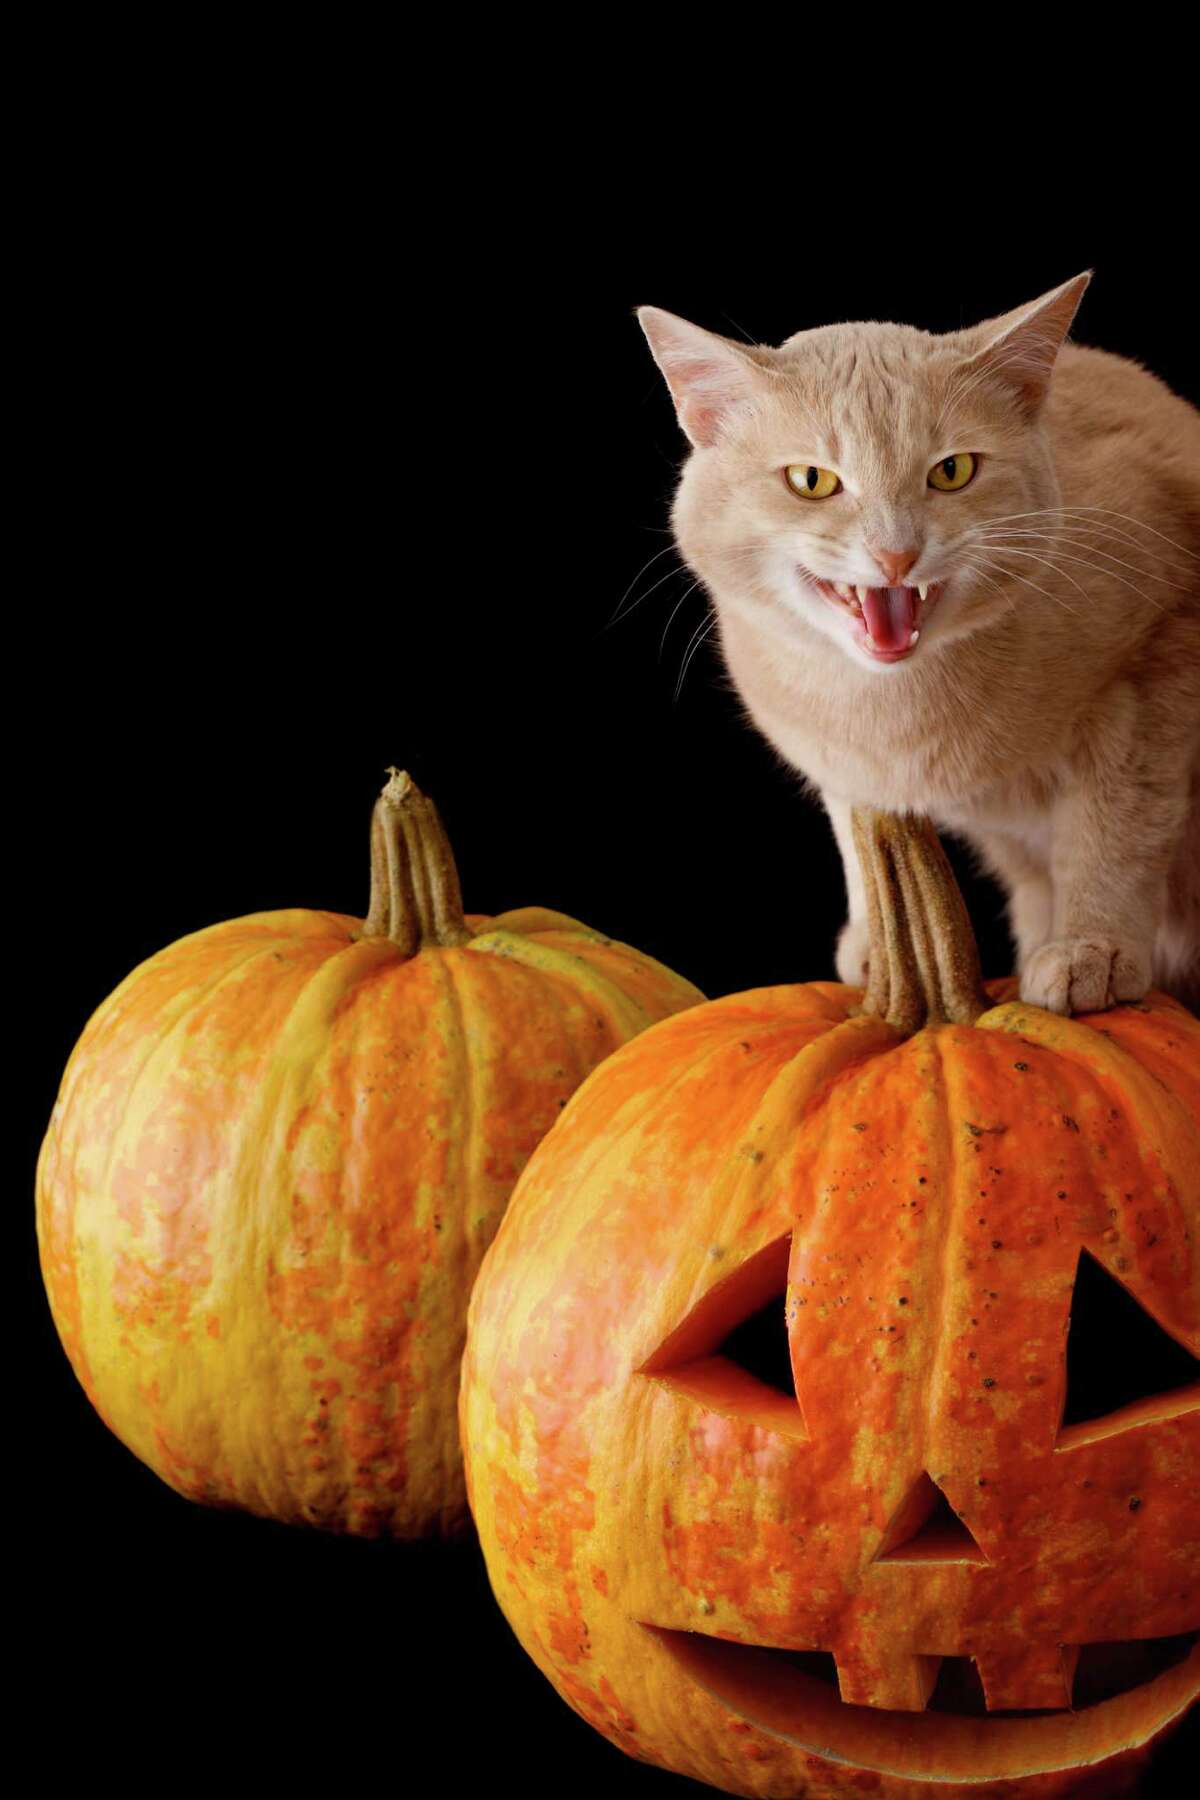 """""""I told you I wanted a SCARY pumpkin! He's smiling for Pete's sake!"""""""